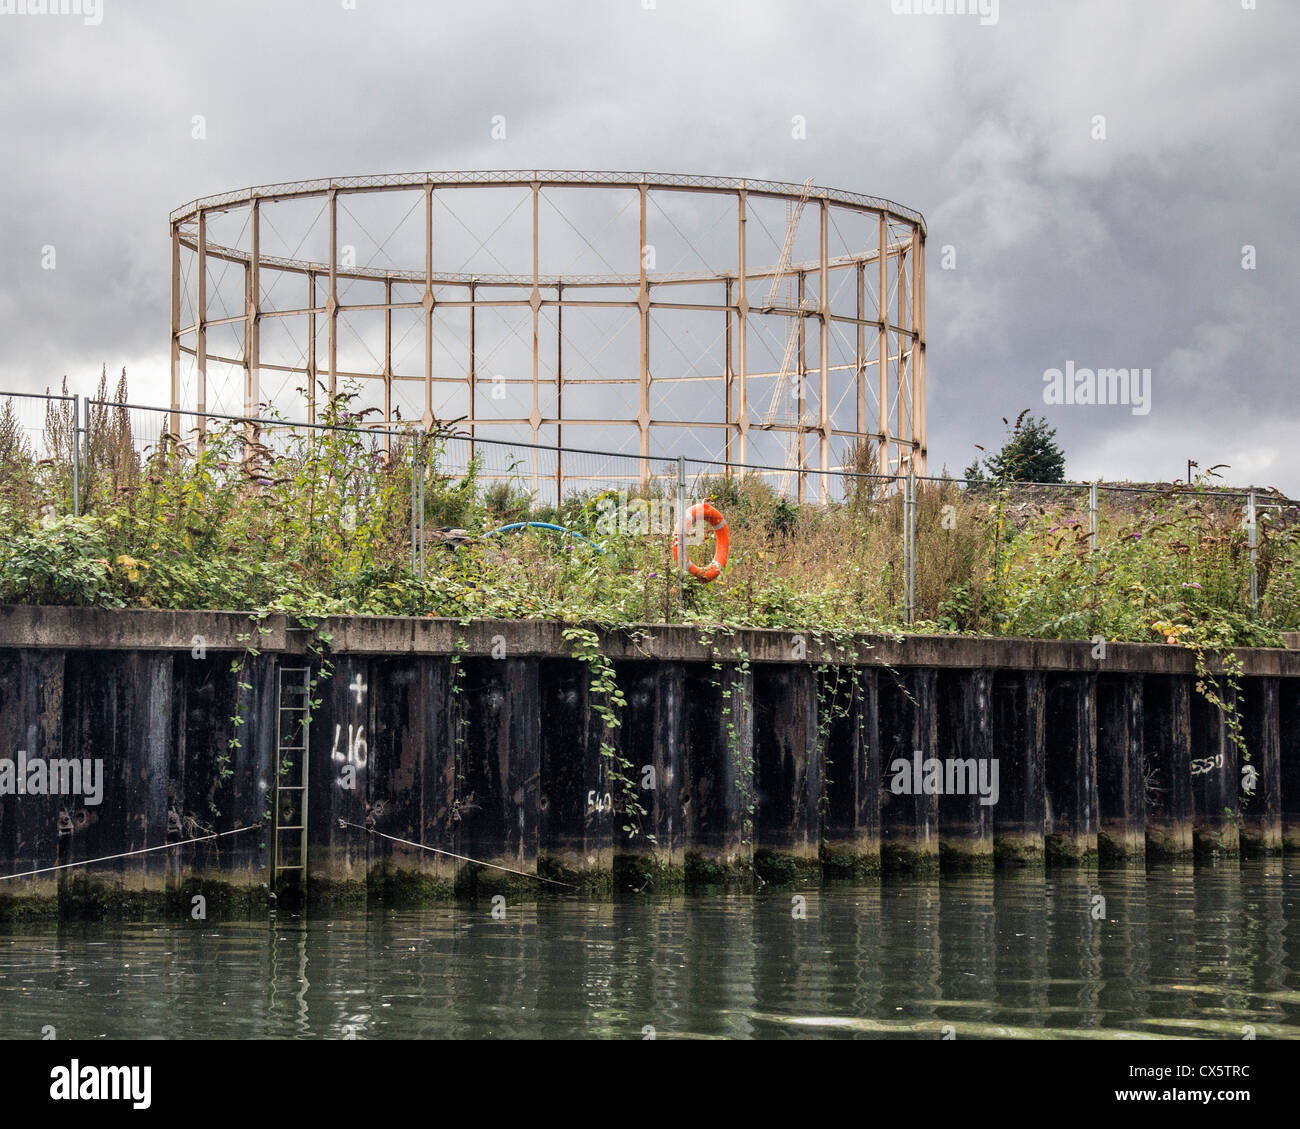 The disused gasometer on the bank  of the Rrver Avon - City of Bath, Somerset - Stock Image